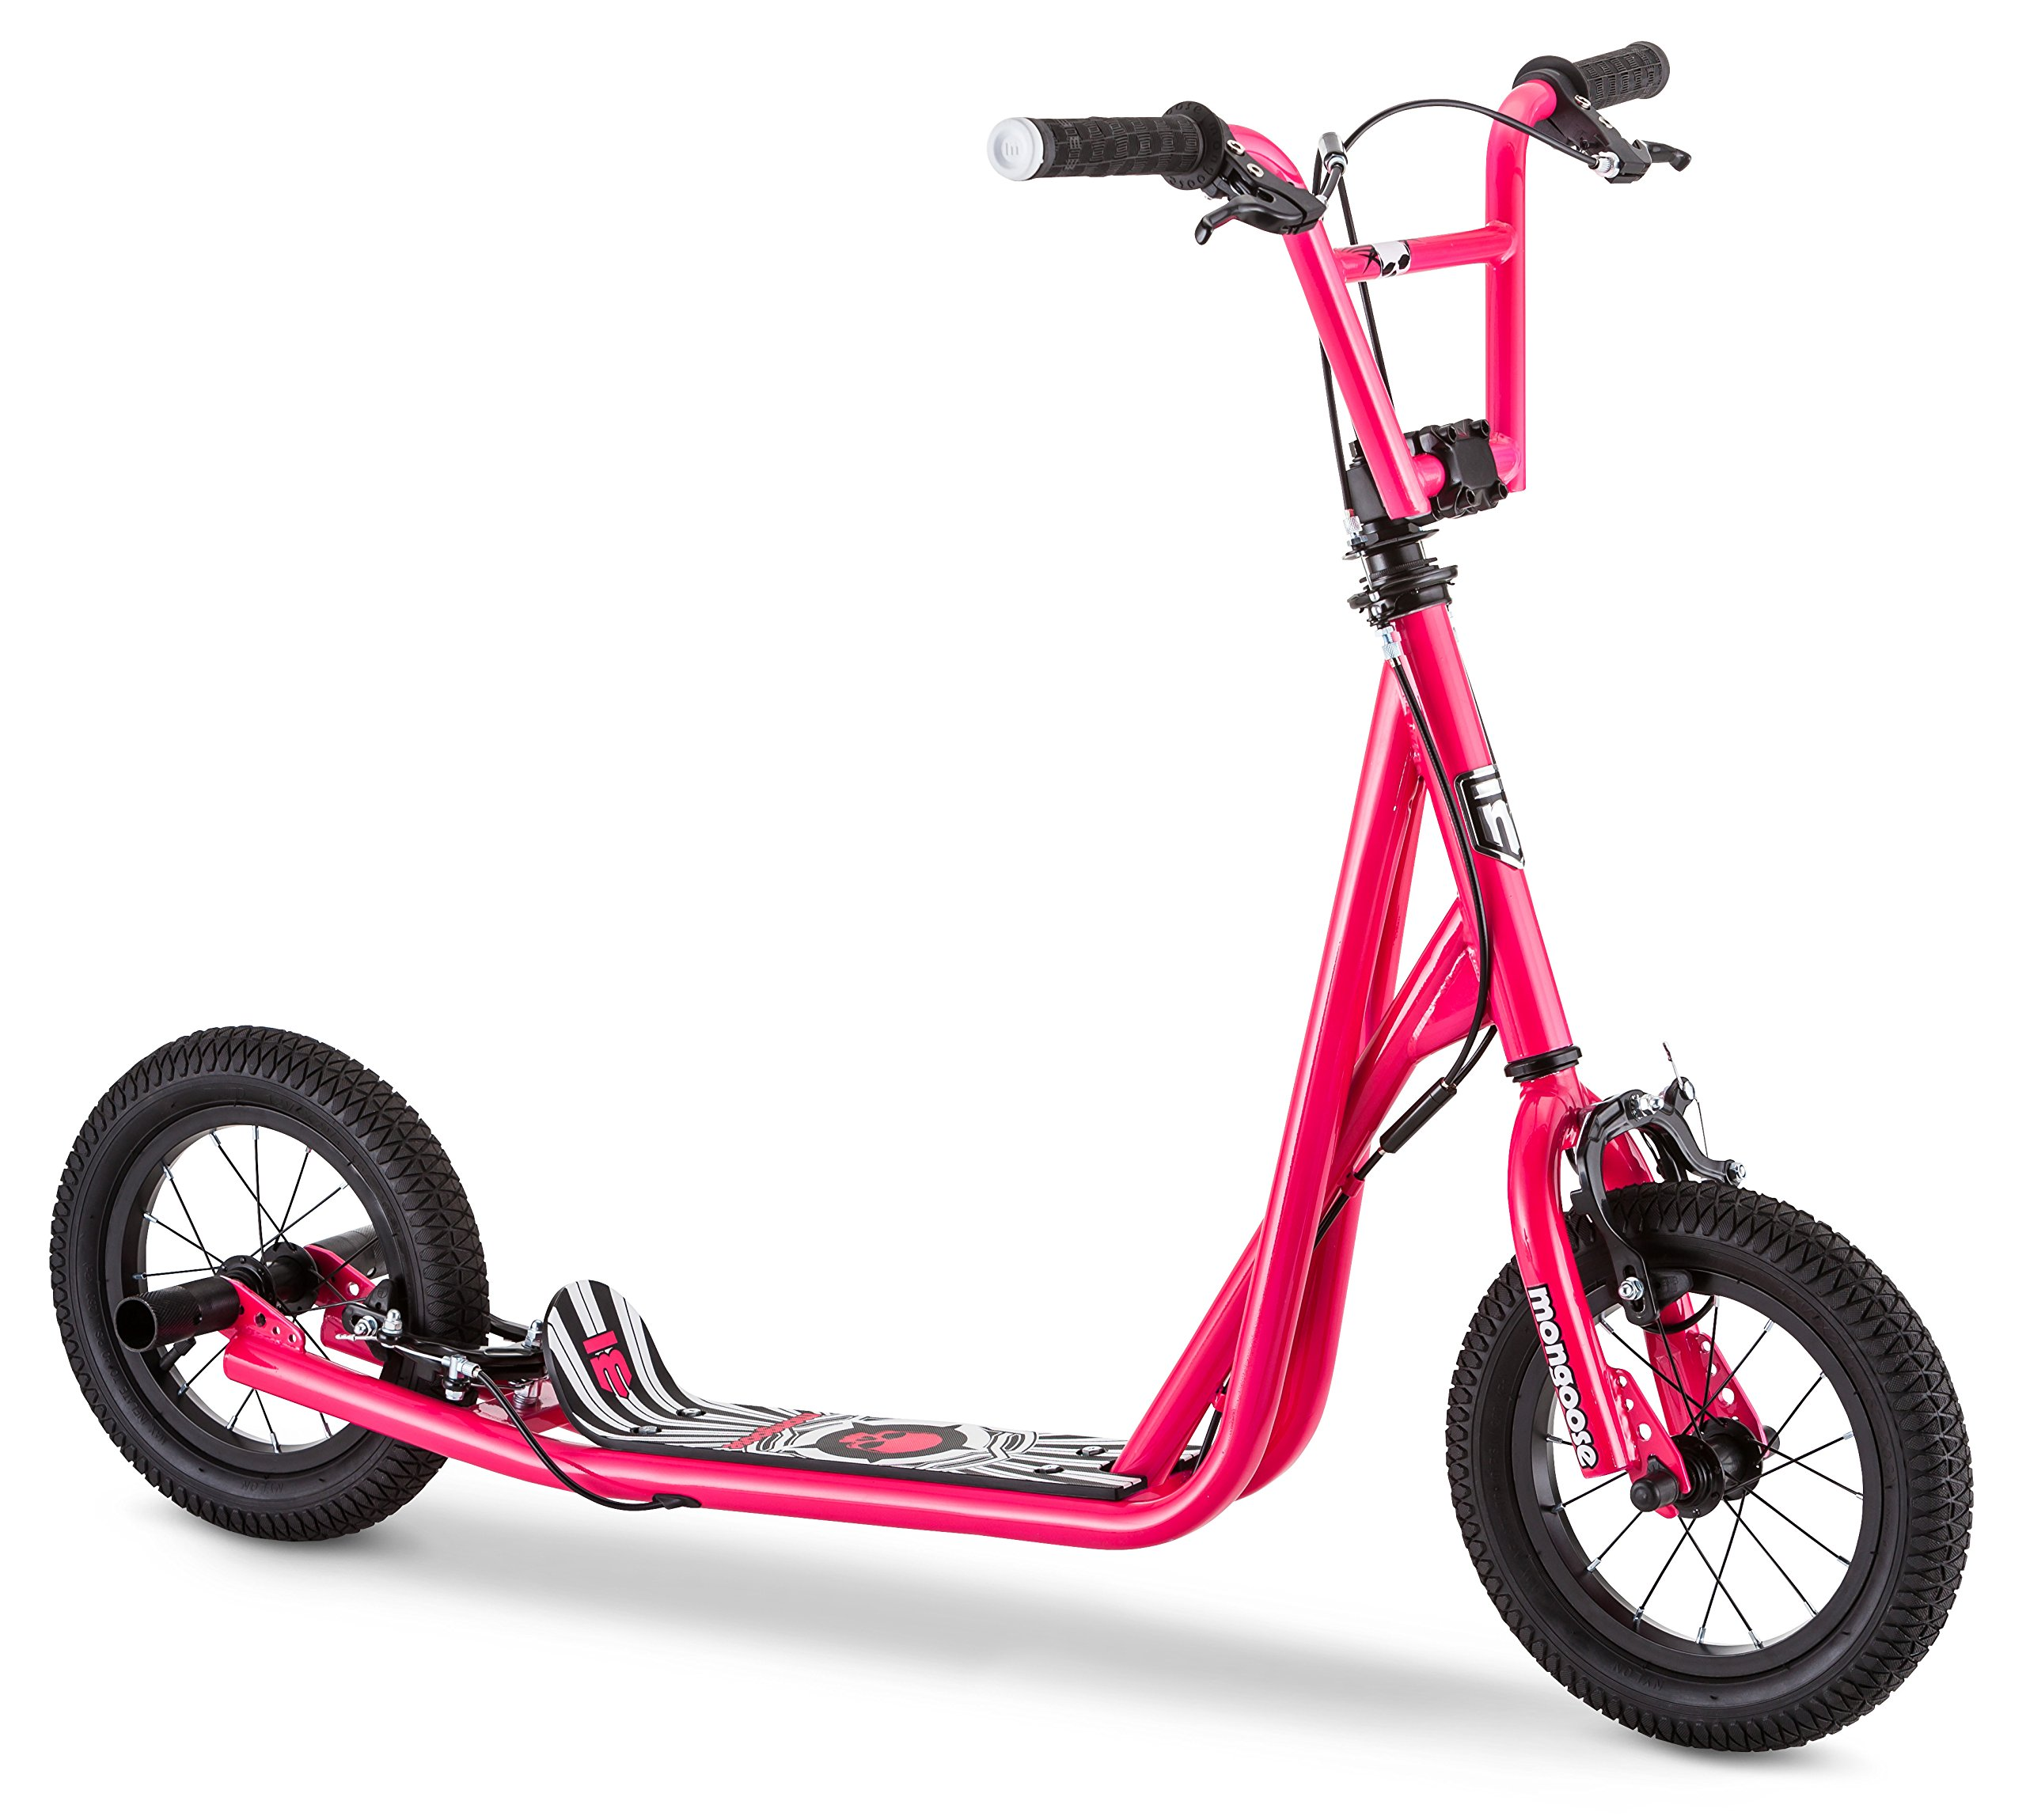 Mongoose Expo Scooter, Featuring Front and Rear Caliper Brakes and Rear Axle Pegs with 12-Inch Inflatable Wheels, Pink/Black